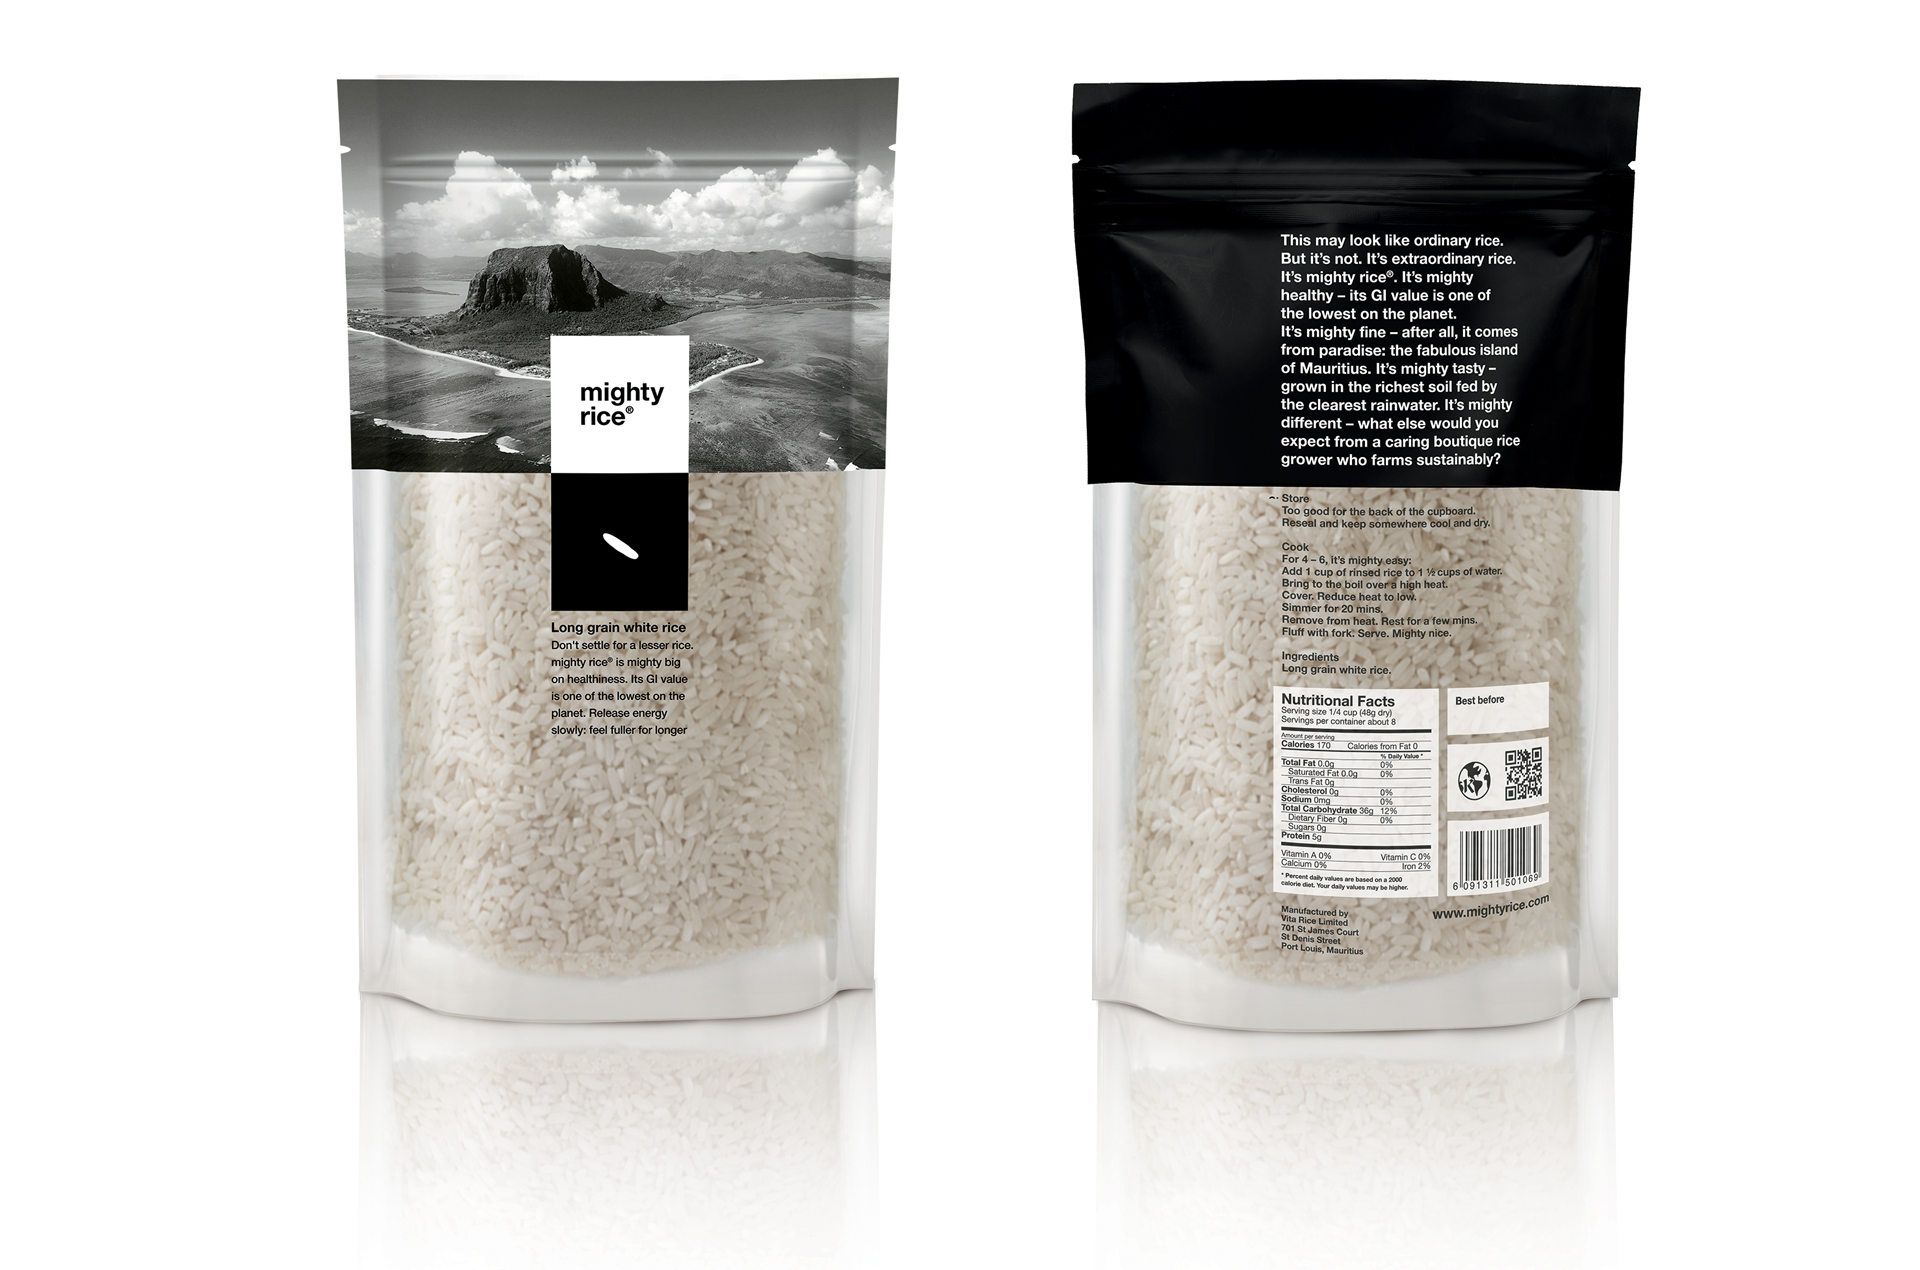 Mighty rice | Nudi o Vestiti?